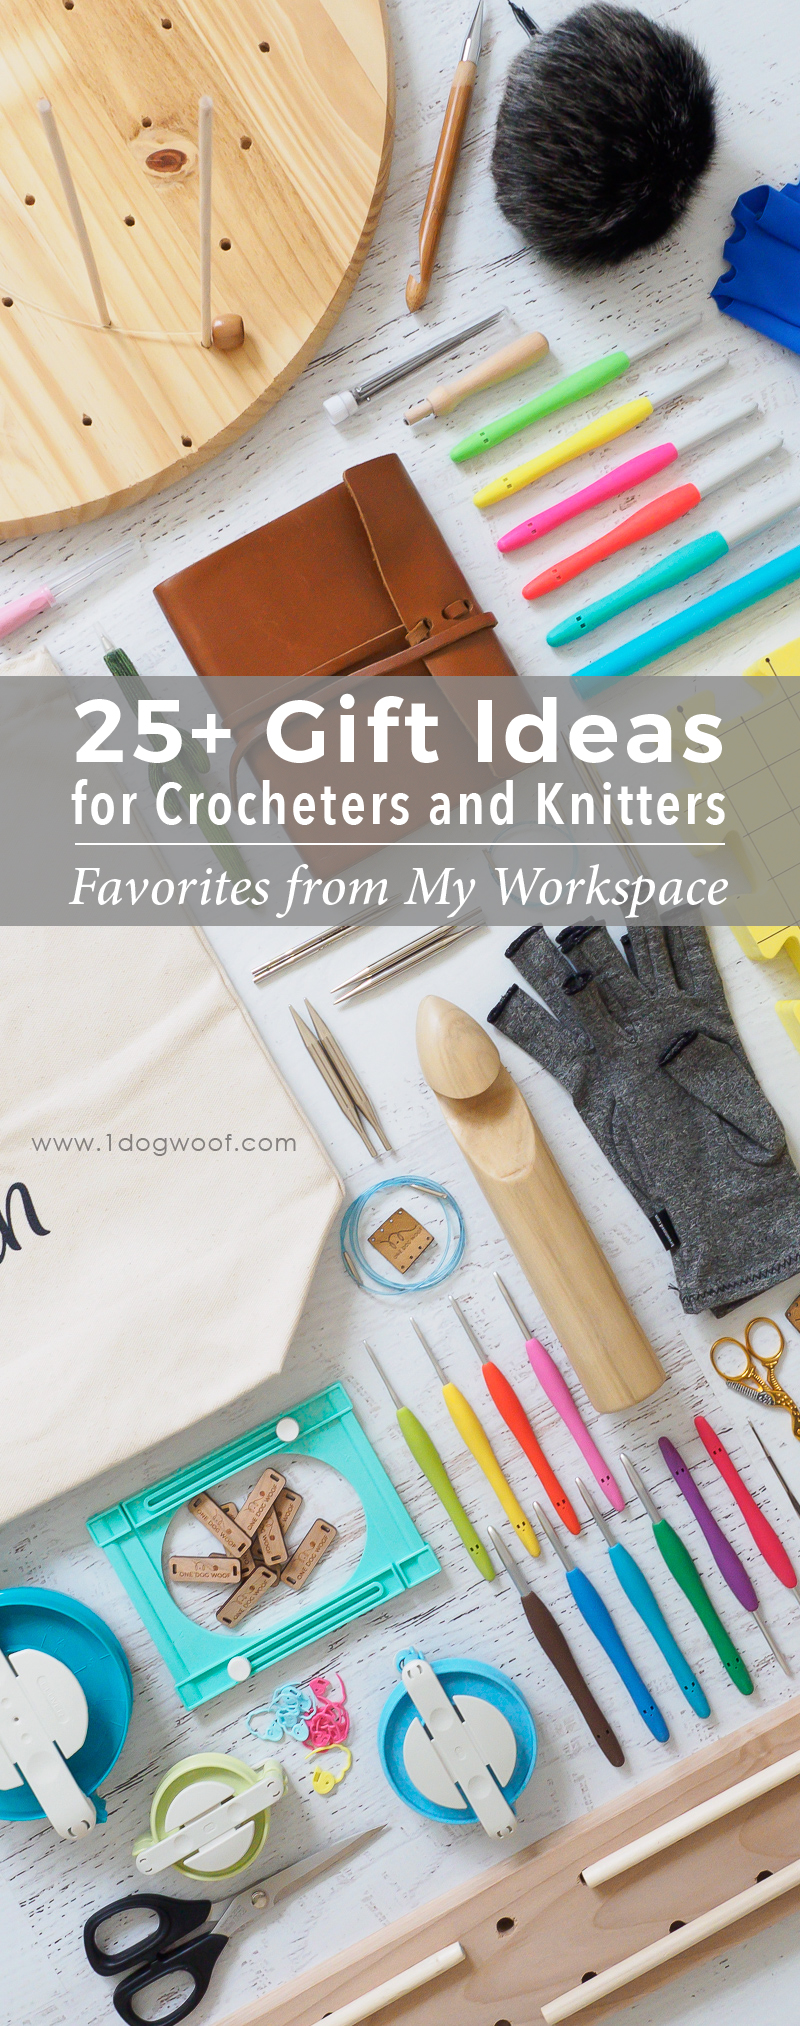 25+ Gift Ideas for Crocheters and Knitters. A gift guide based on favorites from my own workspace. | www.1dogwoof.com